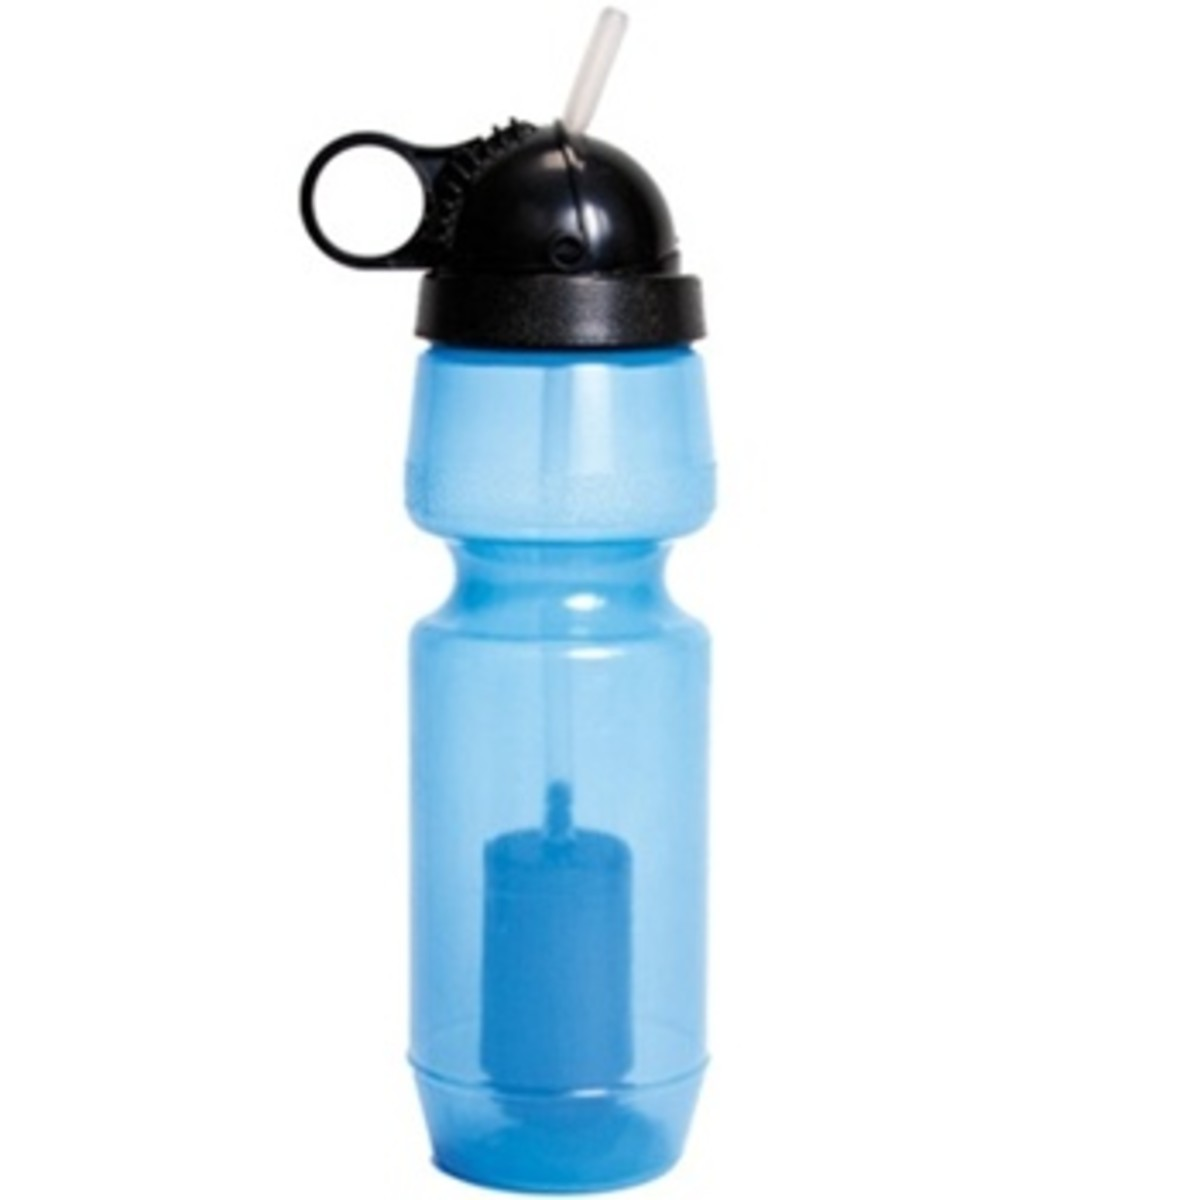 A portable water purifier bottle removes polutants and contaminants.